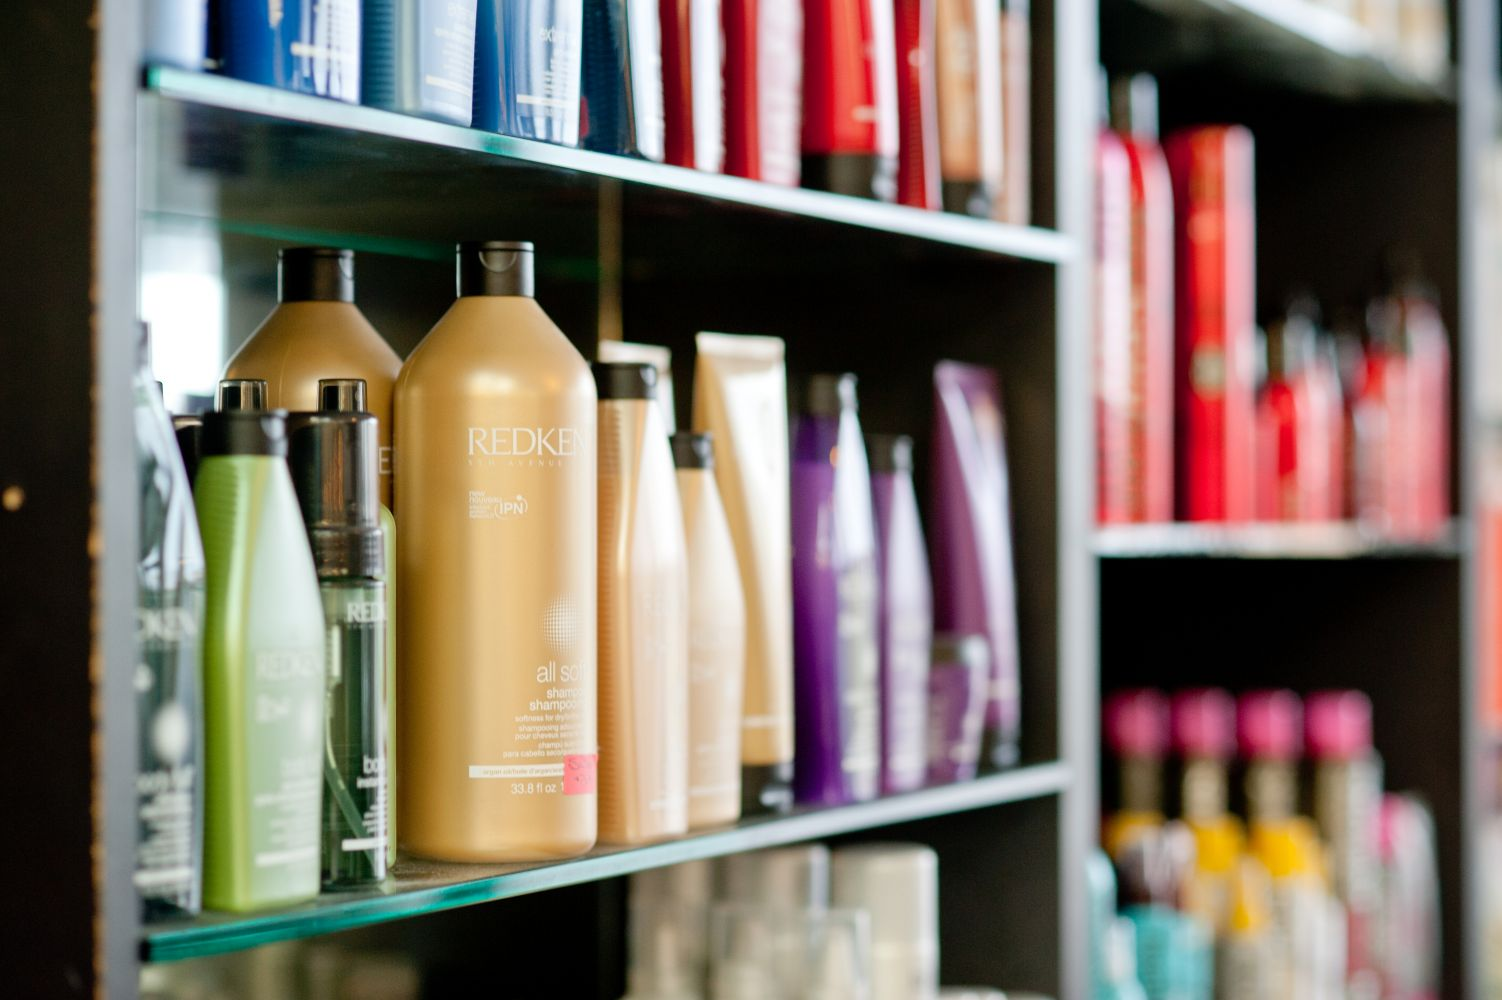 Various haircare products displayed on a shelf